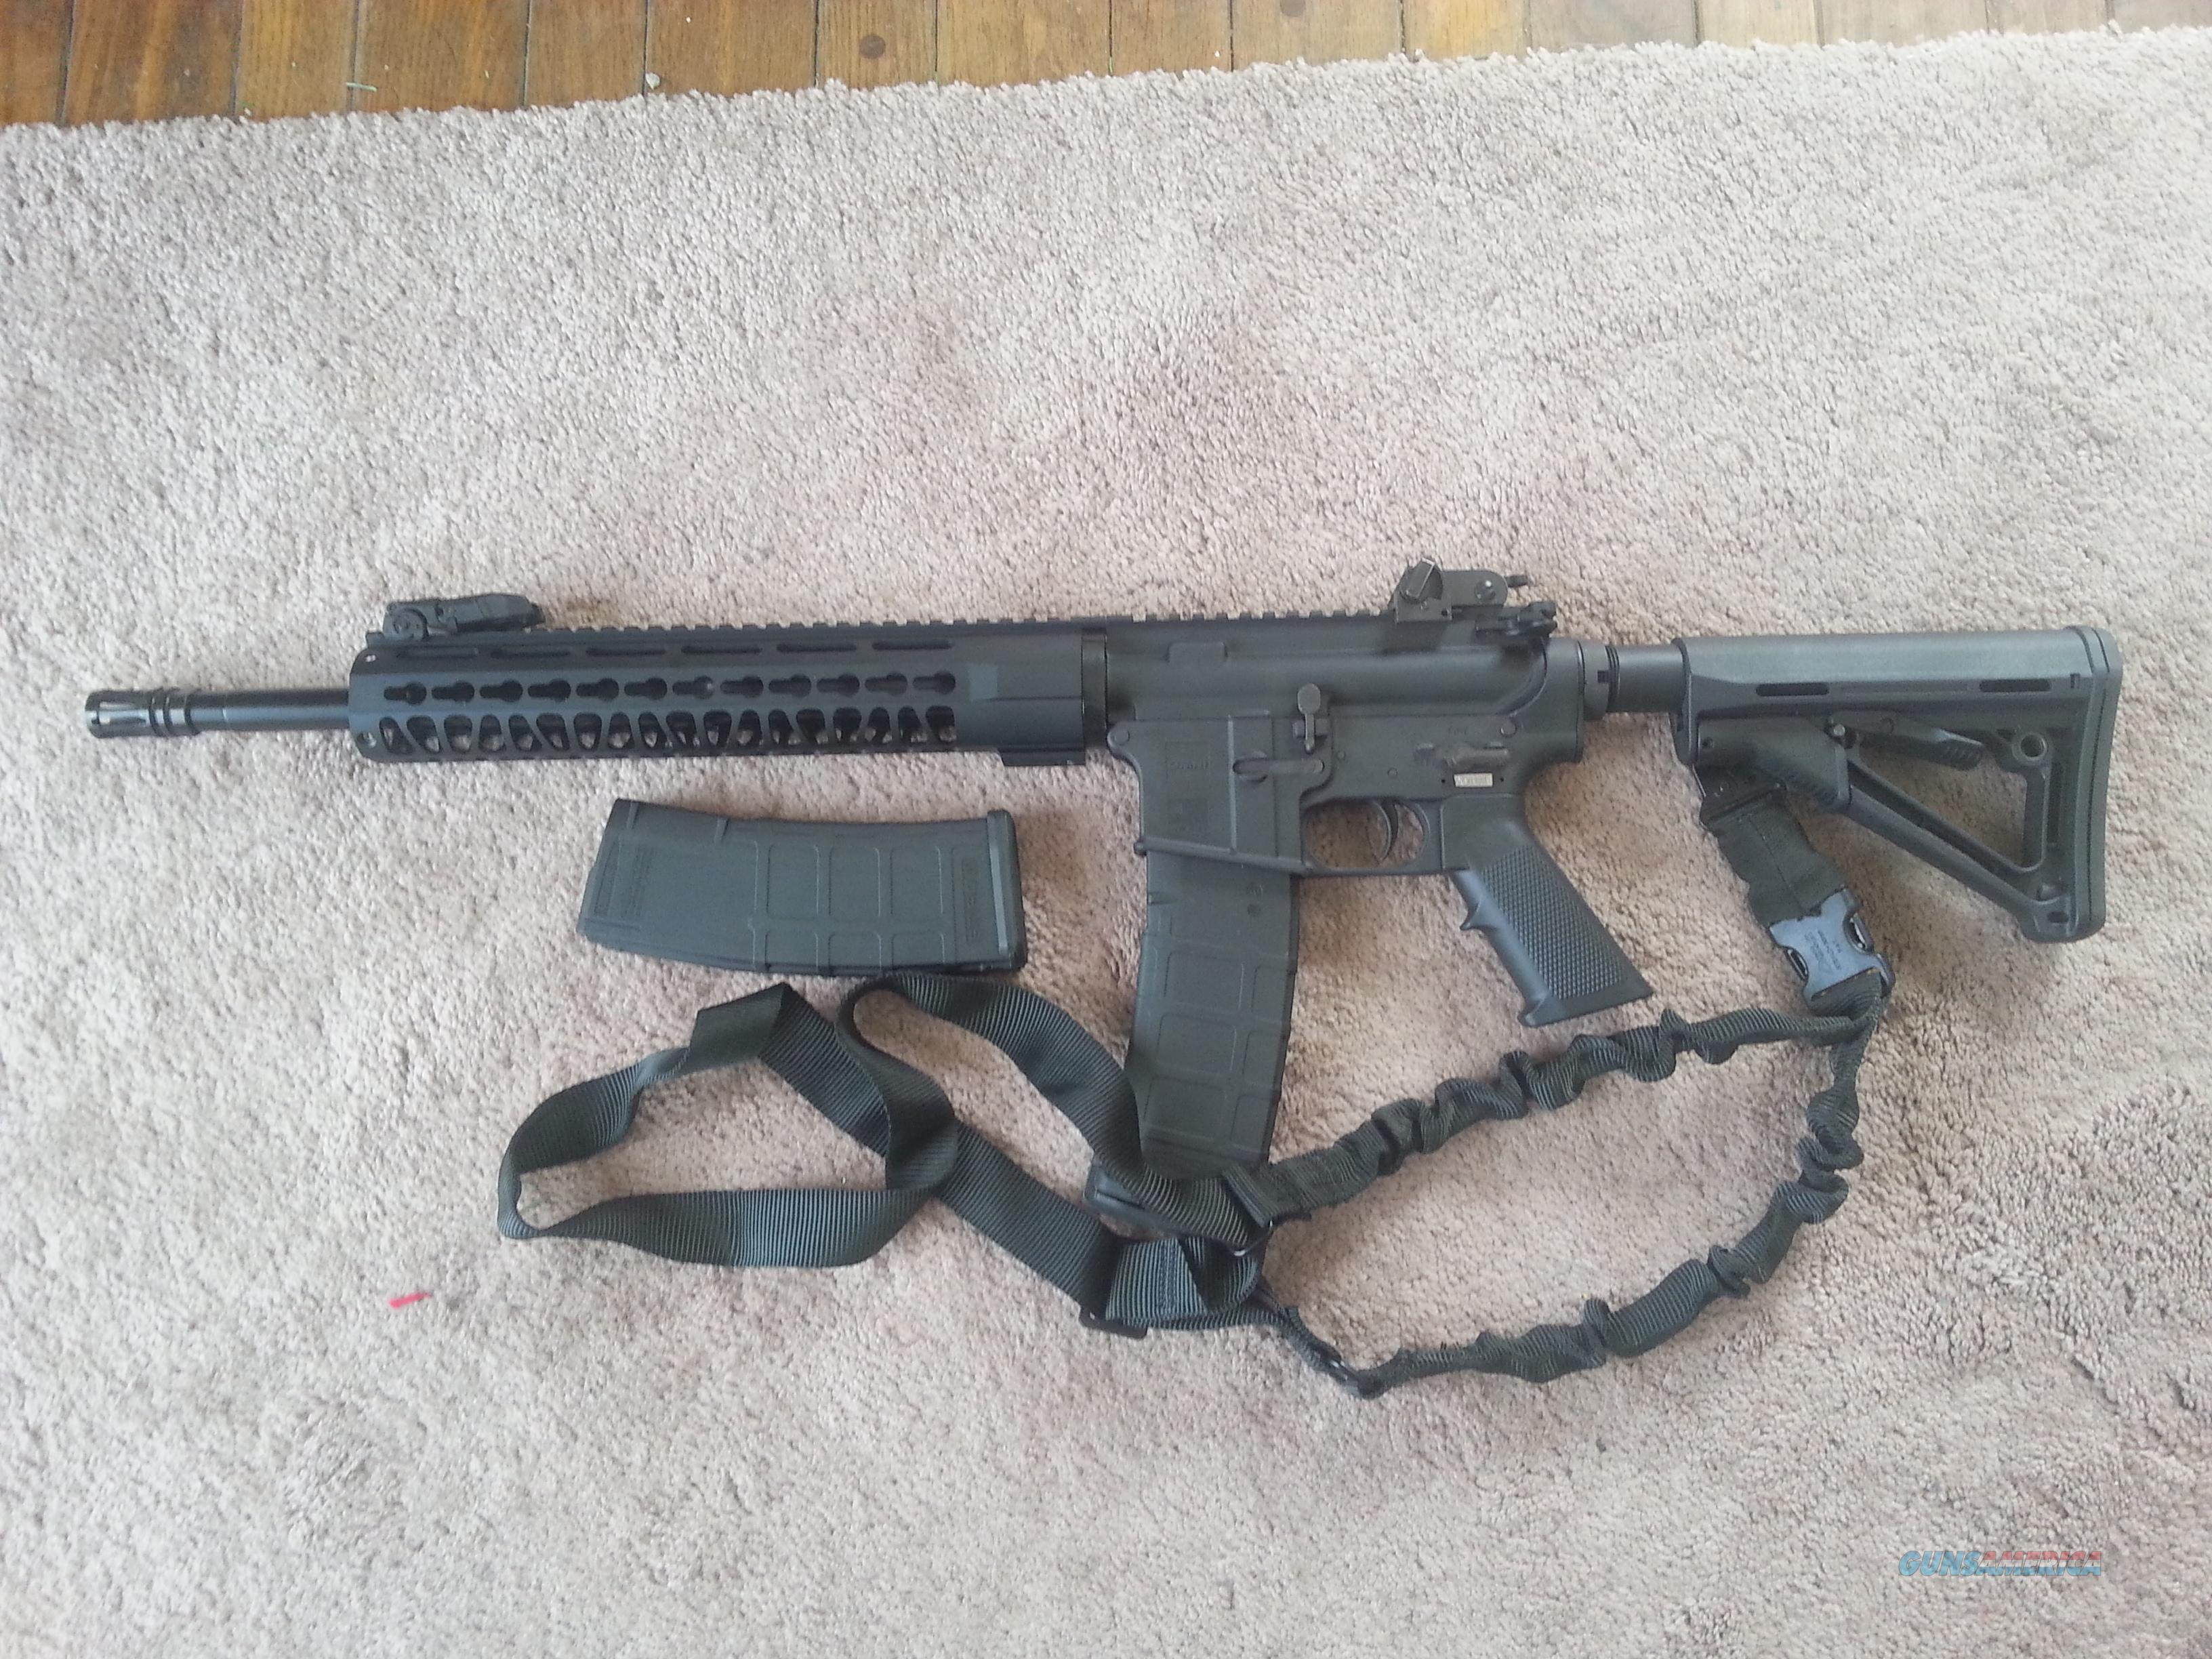 Ar-15 OMNI polymer lower, complete and ready to go, brand new  Guns > Rifles > AR-15 Rifles - Small Manufacturers > Complete Rifle